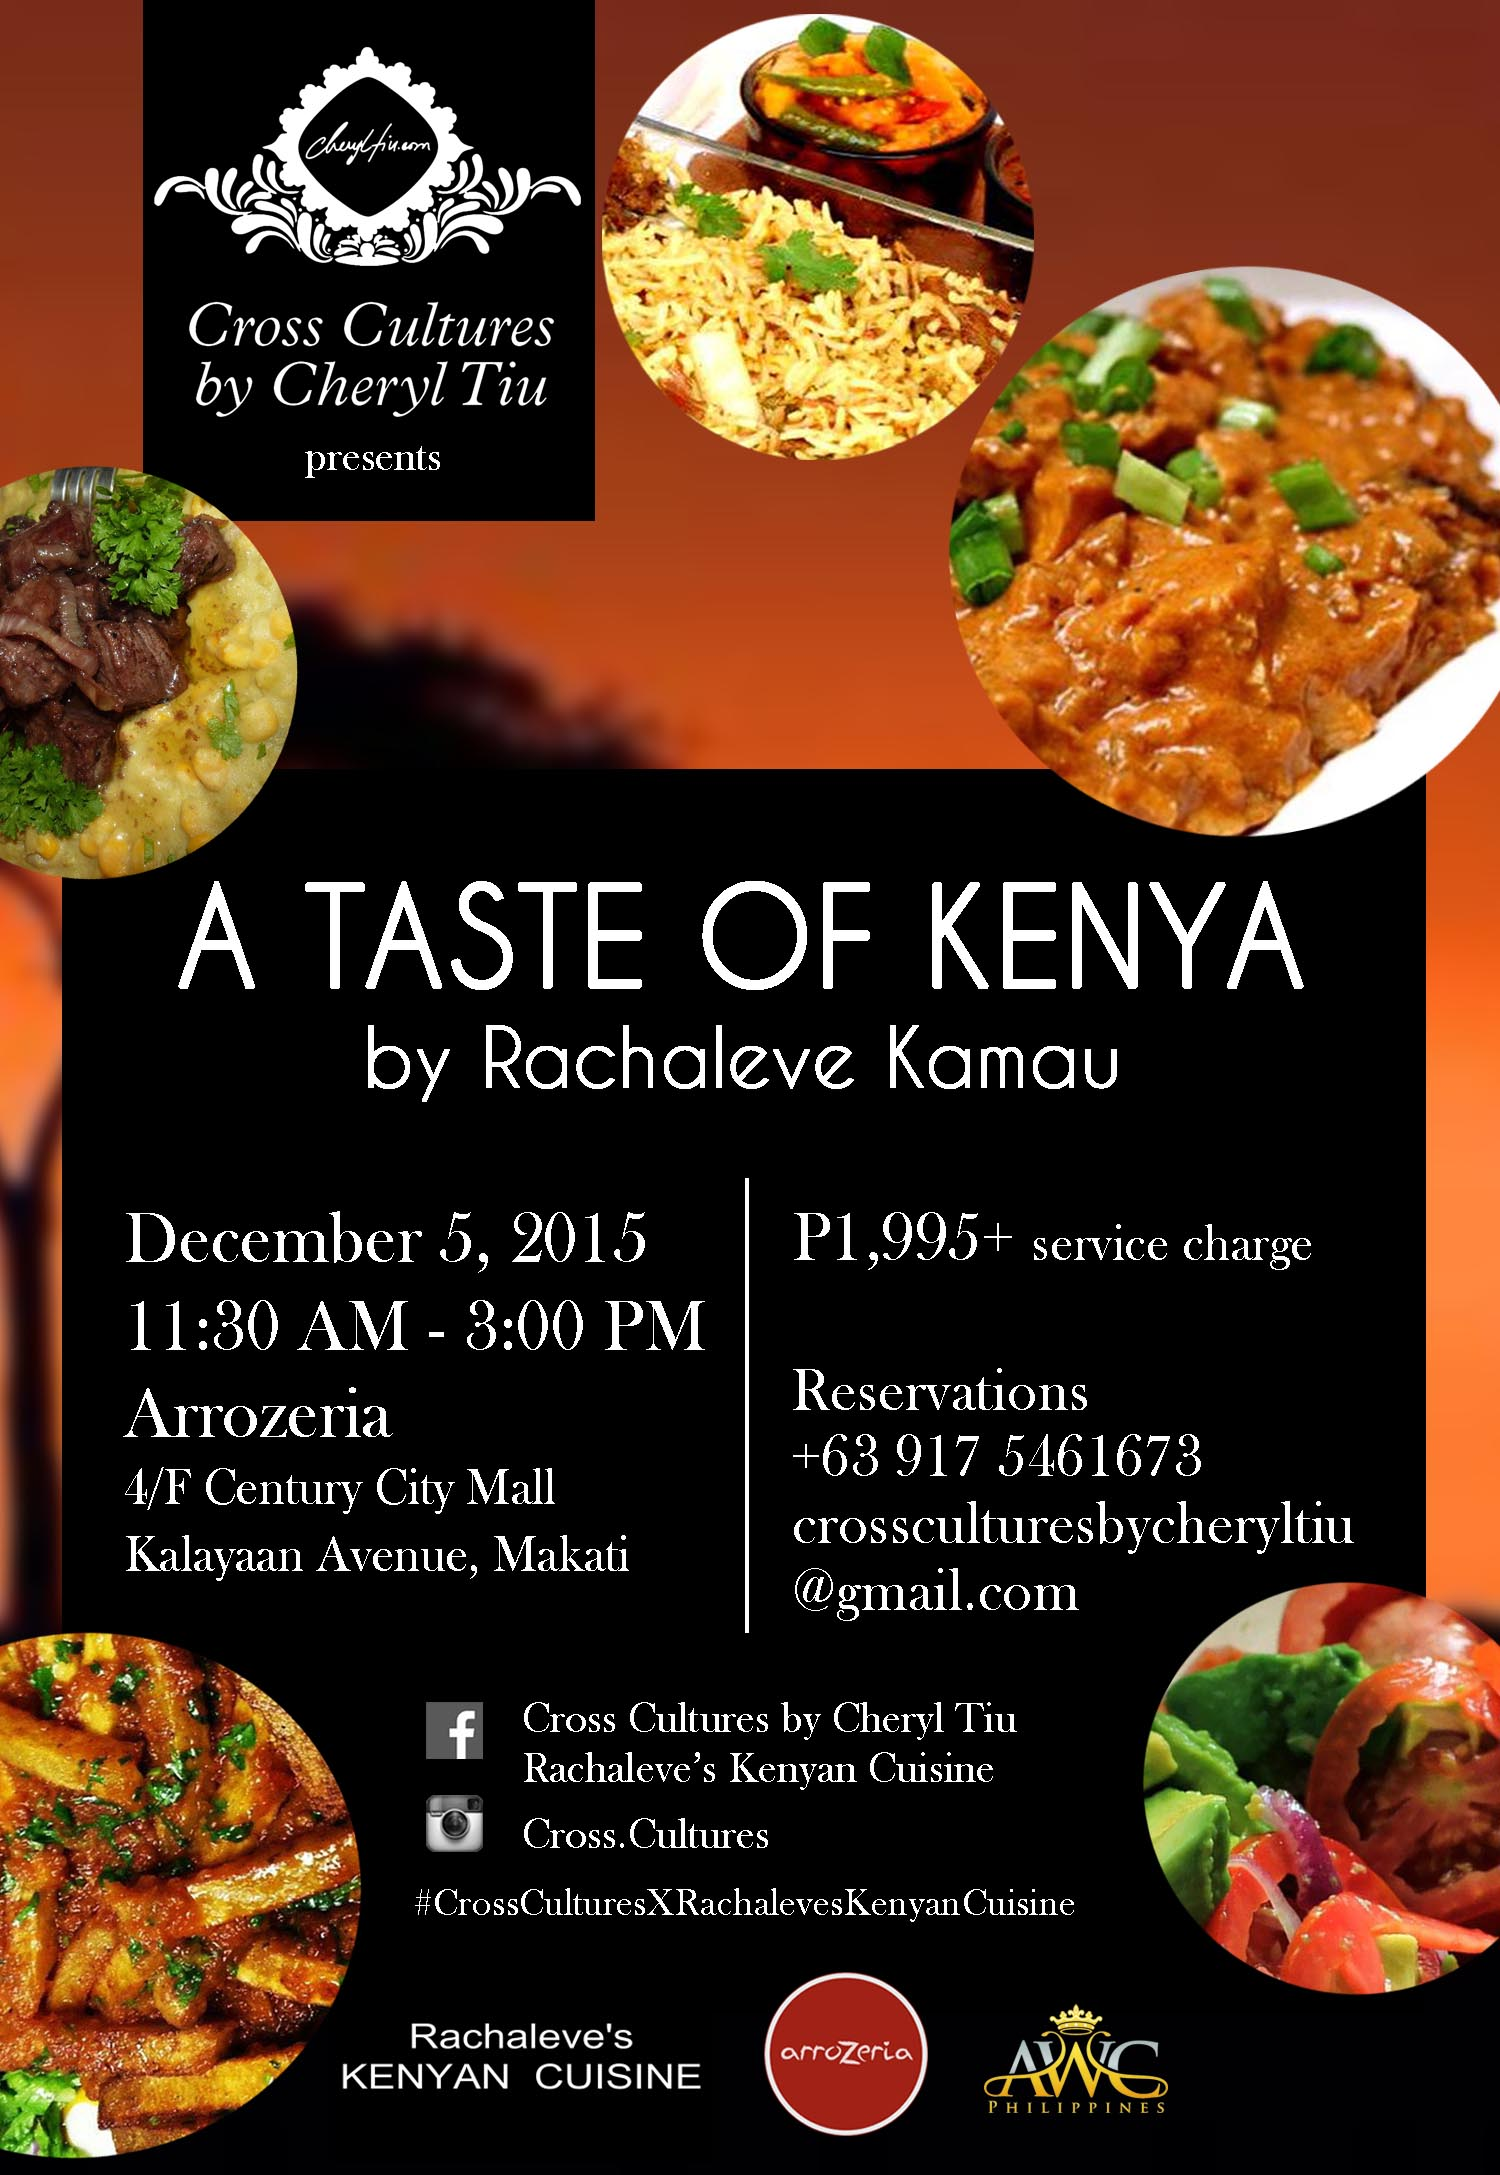 Cross Cultures Presents A Taste of Kenya by Rachaleve Kamau- December 5, 2015 Saturday- Arrozeria Century City Mall- AWC Philippines